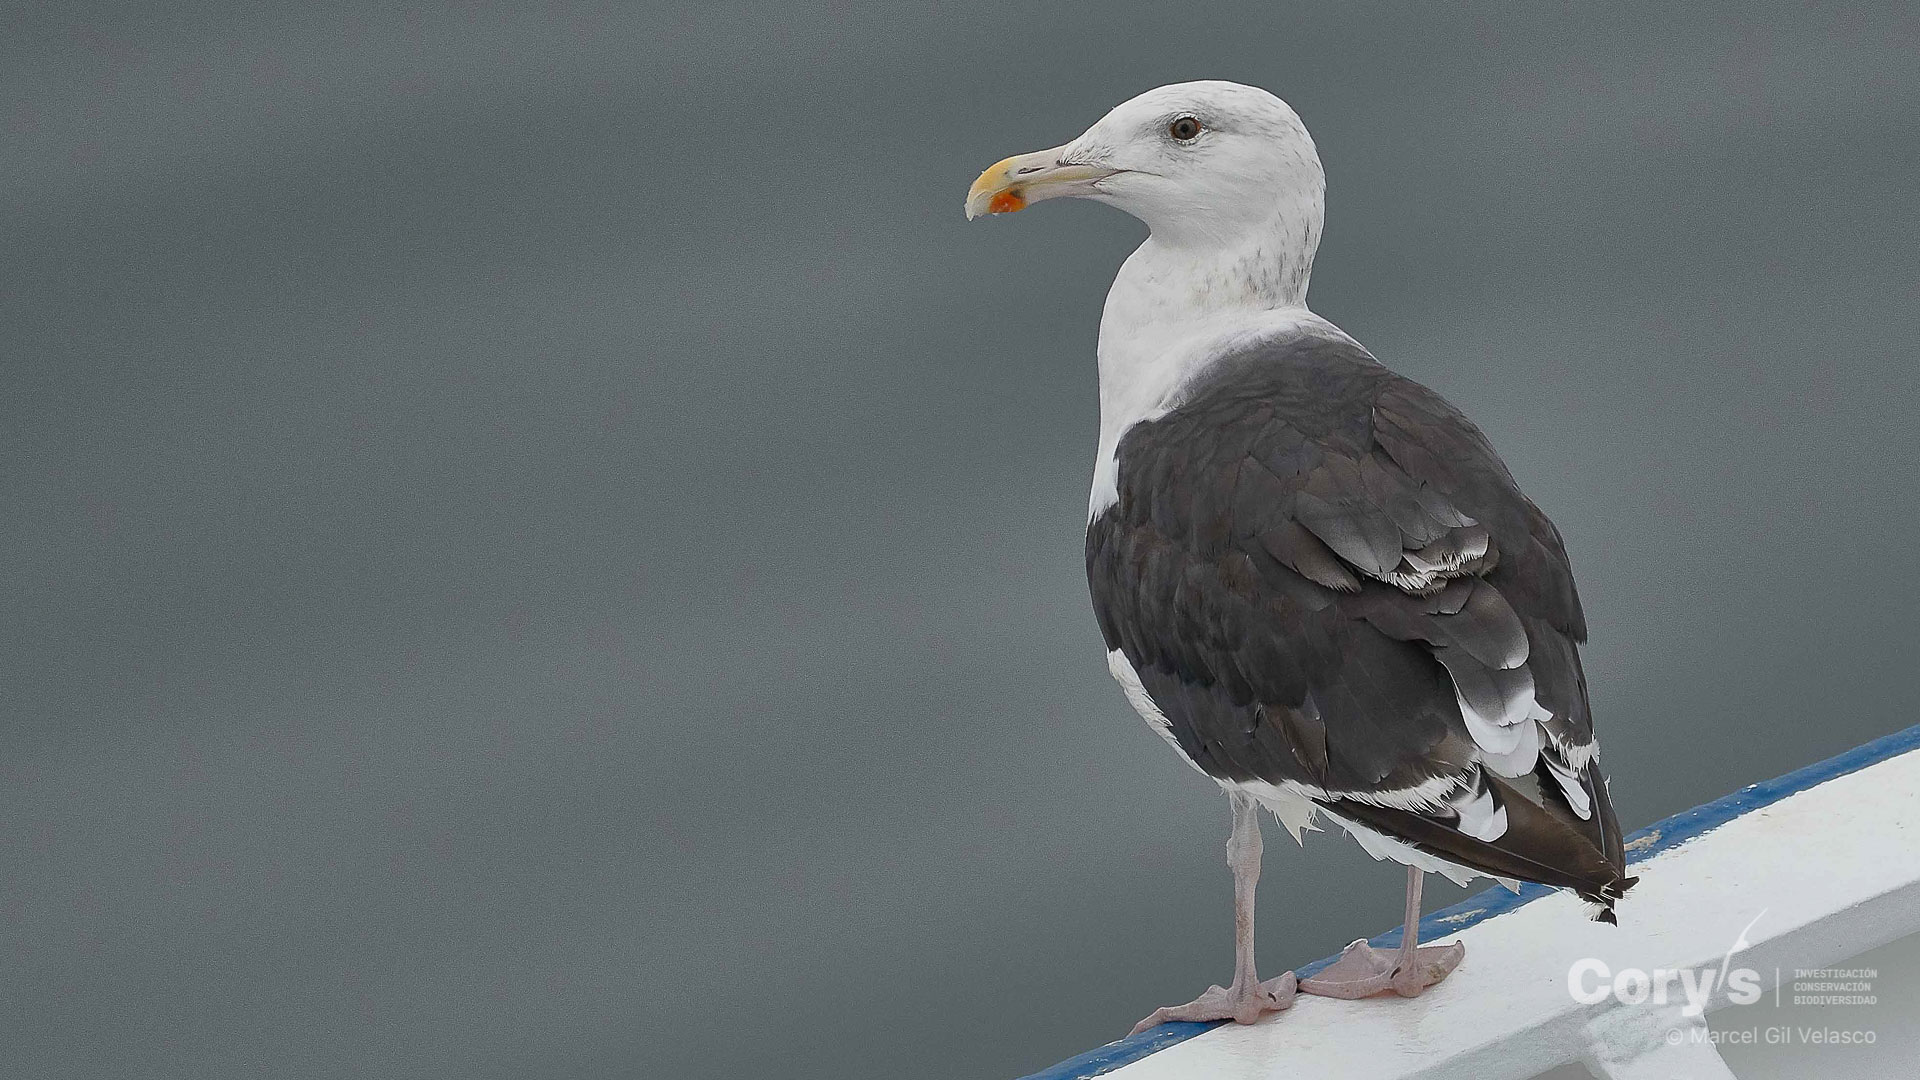 Gavión atlántico / Great Black-backed Gull (Larus marinus). ©Marcel Gil-Velasco (Cory's)